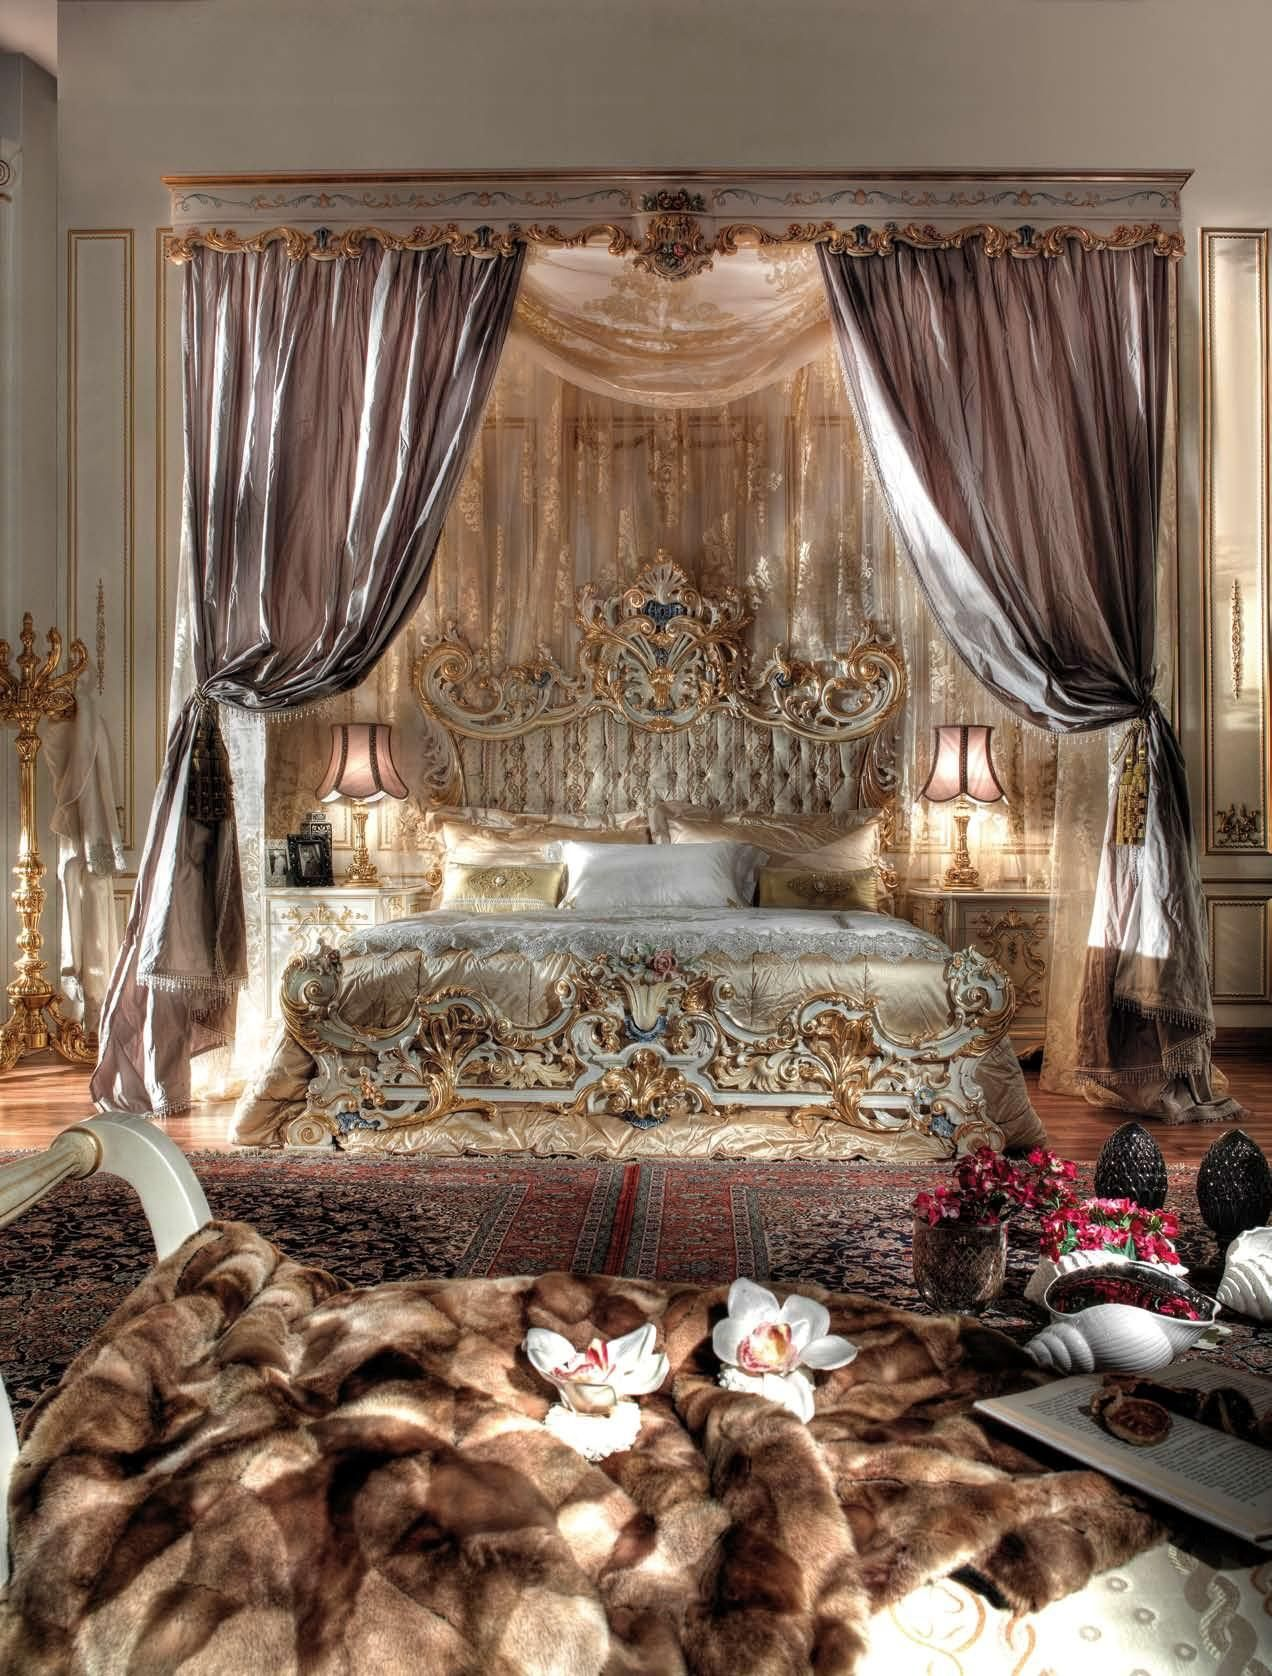 Italian bedroom decor - Sparkle And Satin Bedroom